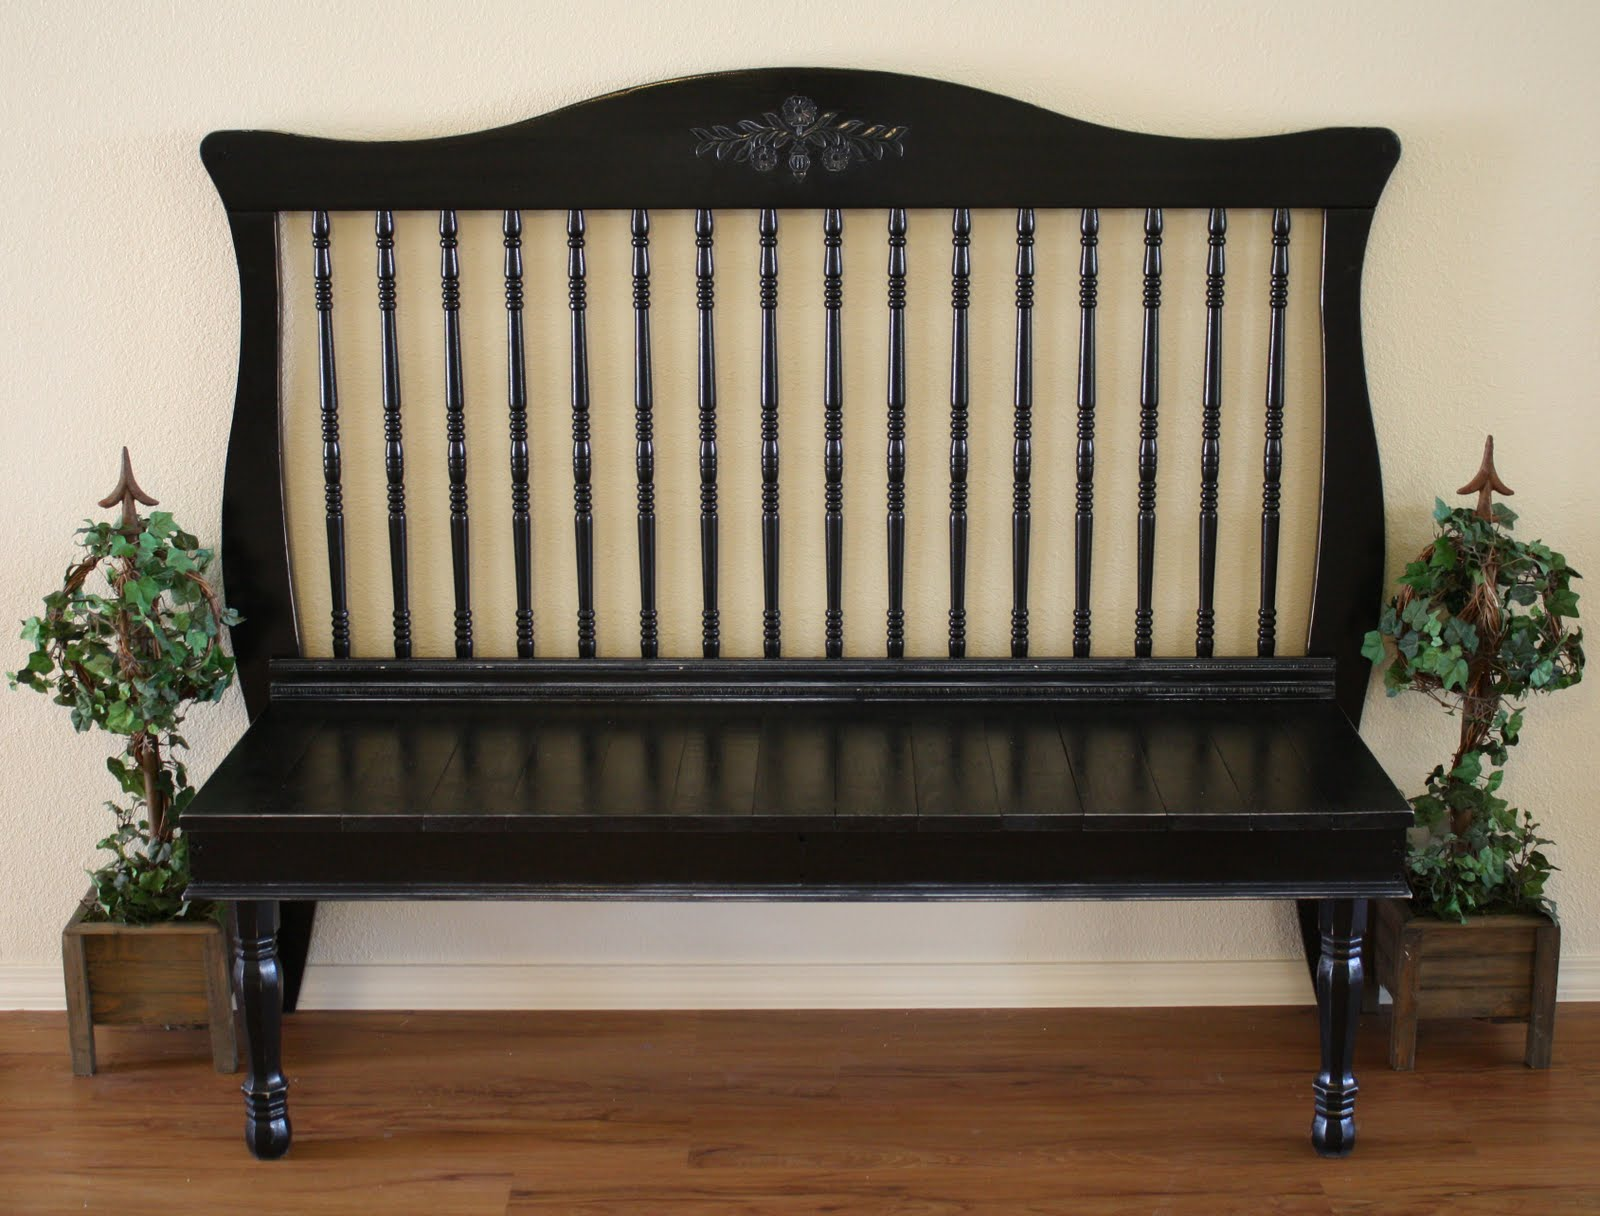 Antique Baby Cribs Dishfunctional Designs Check Out My Crib Upcycled Baby Cribs